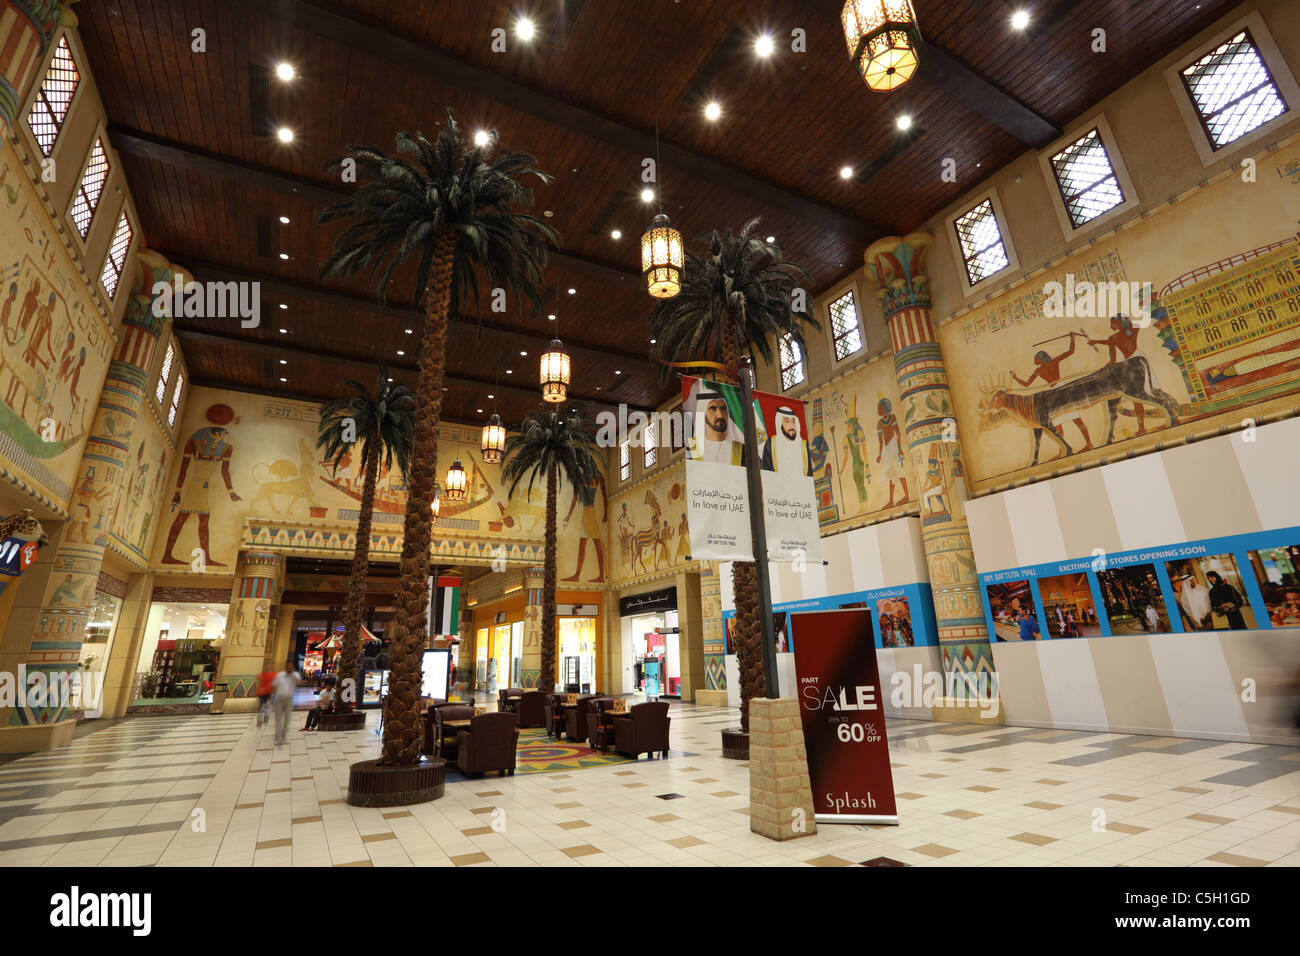 Egypt Shopping Mall High Resolution Stock Photography And Images Alamy